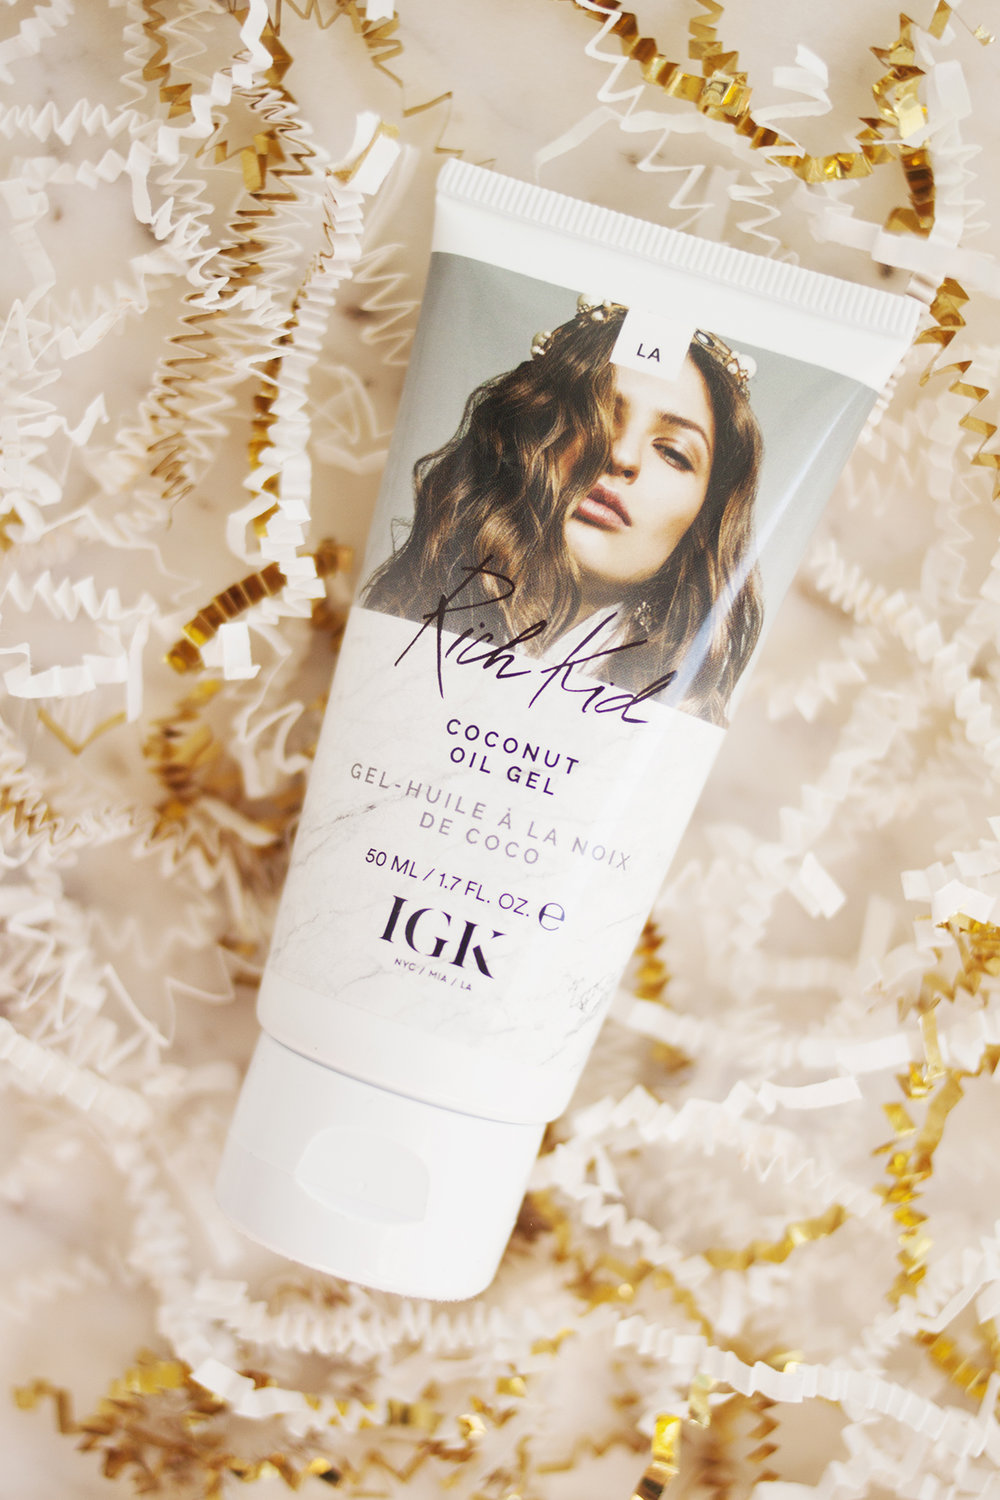 - A new hair product that I've been enjoying is the IGK Rich Kid Coconut Oil Gel. I'm not typically one to try out every new high end haircare launch, but even though IGK are fairly new on the scene, for some reason I'm really drawn to their products (good marketing & branding, I suppose). I have long, fairly straight hair but it's prone to getting really fluffy if I brush it while it's dry, so I like to apply product to wet hair after it's just been washed, let it air-dry and not do anything other than use dry shampoo until I wash it again. Anything that can tame and smooth my hair without weighing it down and that doesn't require heat styling to work is my kind of product. I still love the Living Proof Perfect Hair Day 5-in-1 Styling Treatment which I've been using for a few years now, but this is a similar kind of thing and I've been enjoying trying something new. Plus I love that IGK offer most of their products in travel sizes so you can try them out without breaking the bank, and their packaging is absolutely beautiful too.